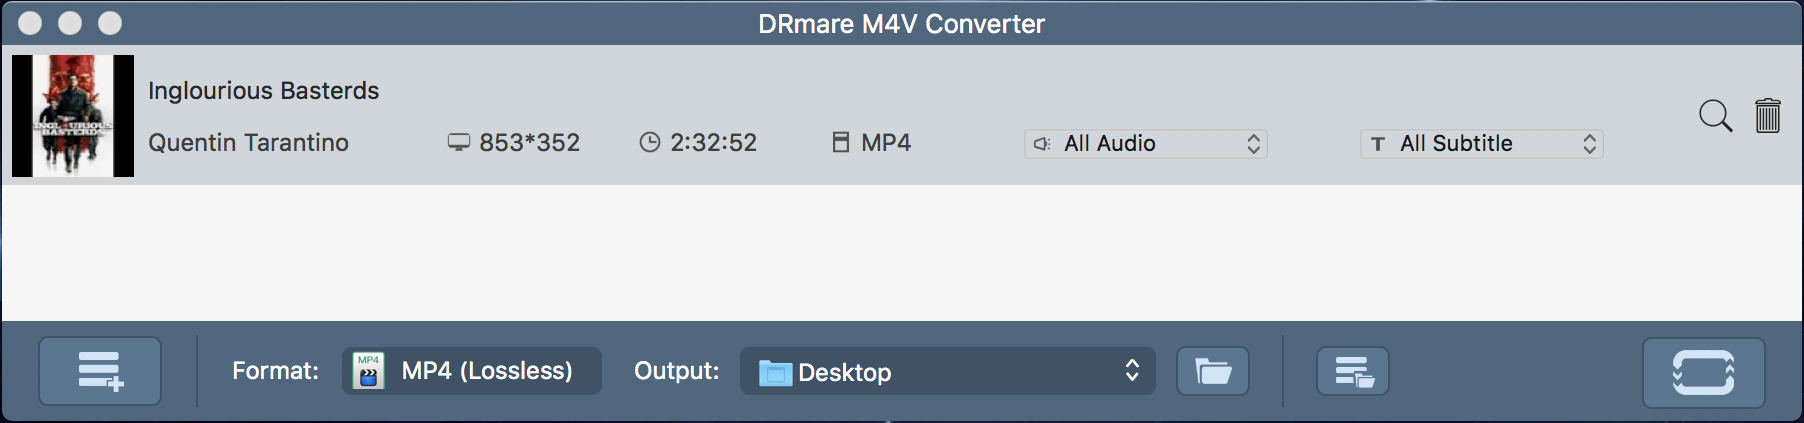 drmare m4v converter - ready to convert inglorious basterds